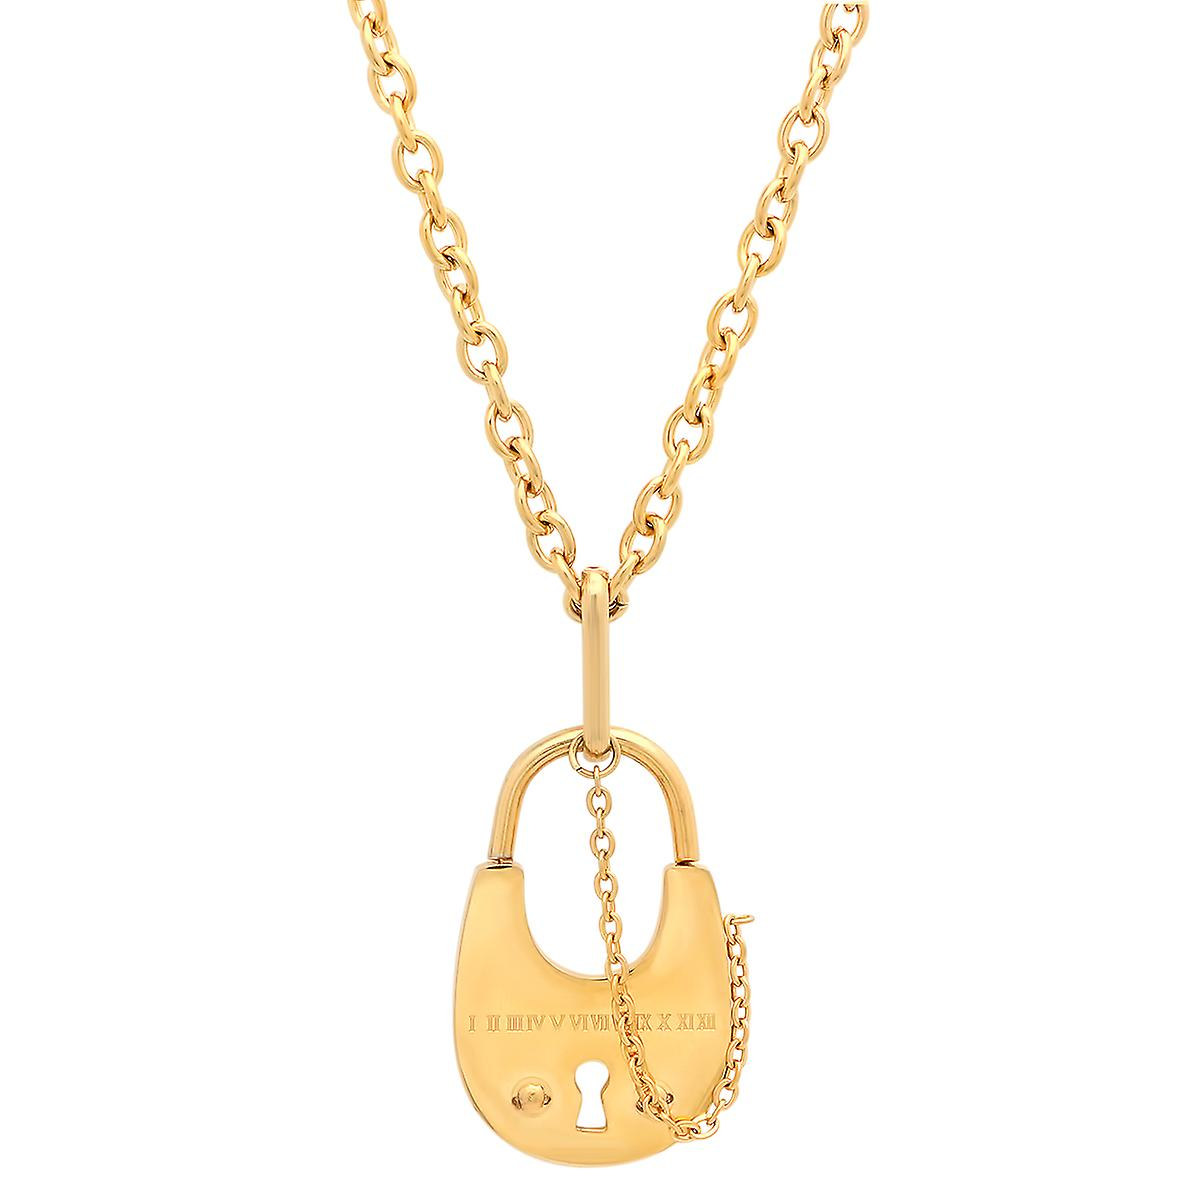 Ladies 18K Gold Plated Stainless Steel Cable Chain Link Necklace